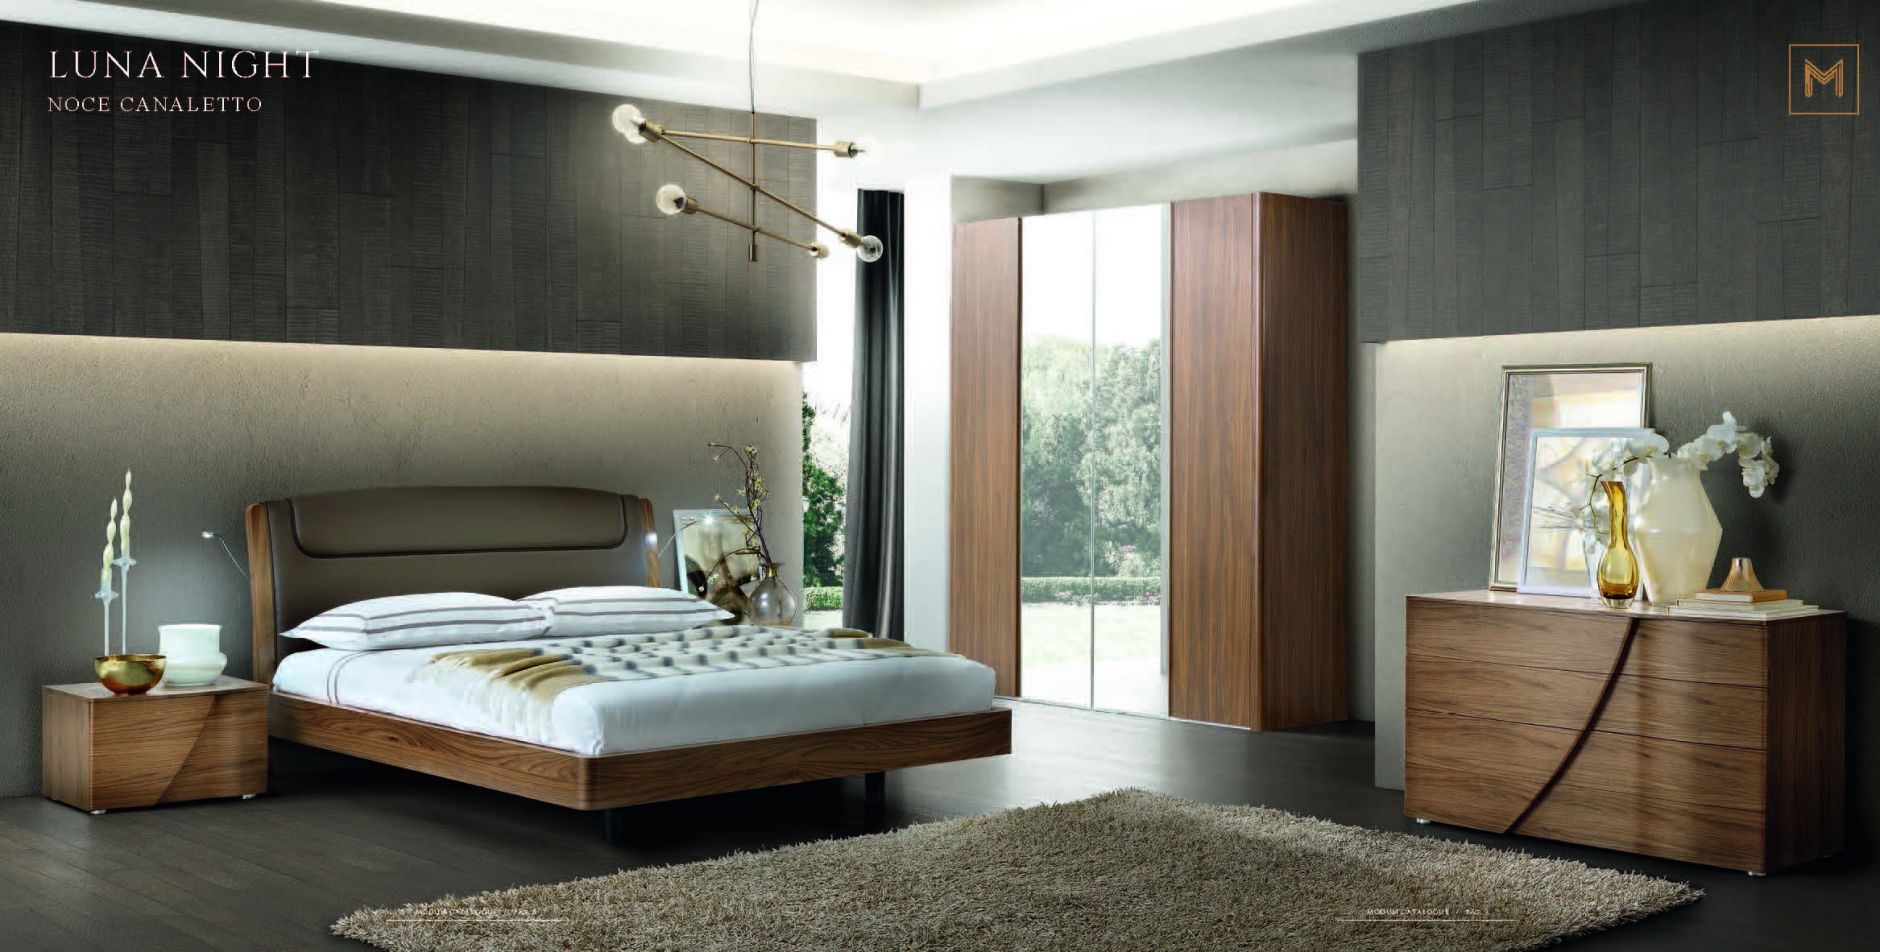 schlafzimmer camelgroup nacht schlafzimmer luna serie. Black Bedroom Furniture Sets. Home Design Ideas